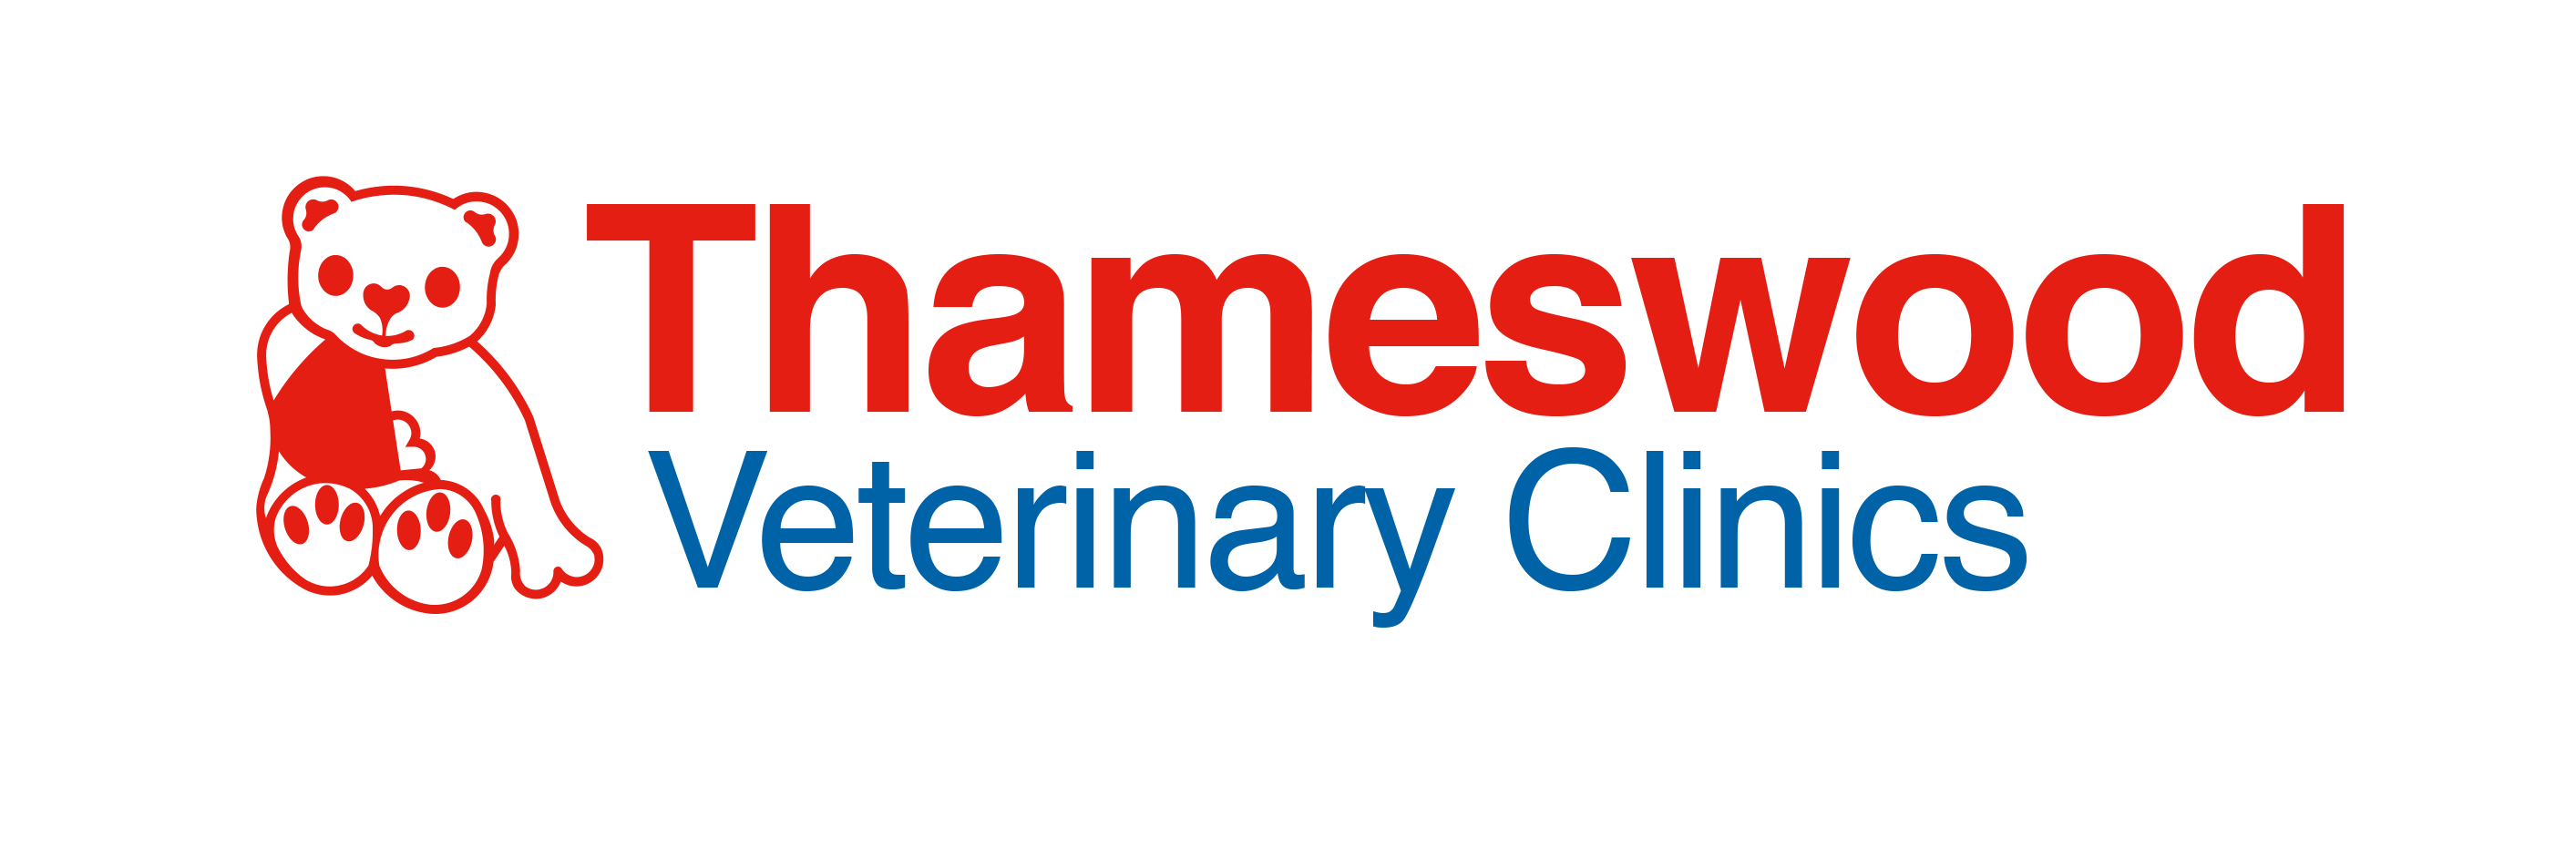 Thameswood Veterinary Clinic - Purton Road